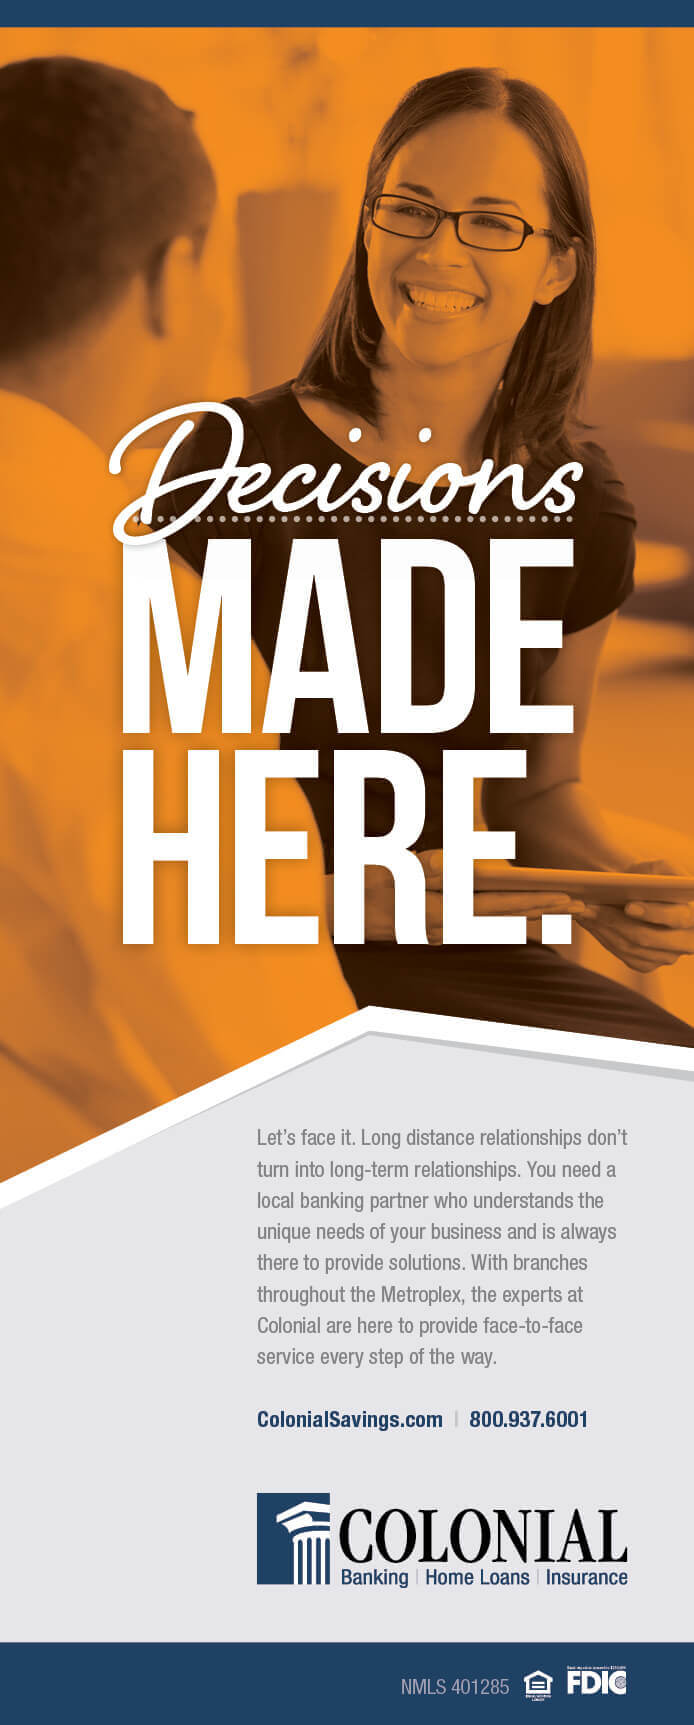 Colonial--GCG-Marketing--Advertising--MADE-HERE Magazine-Ad